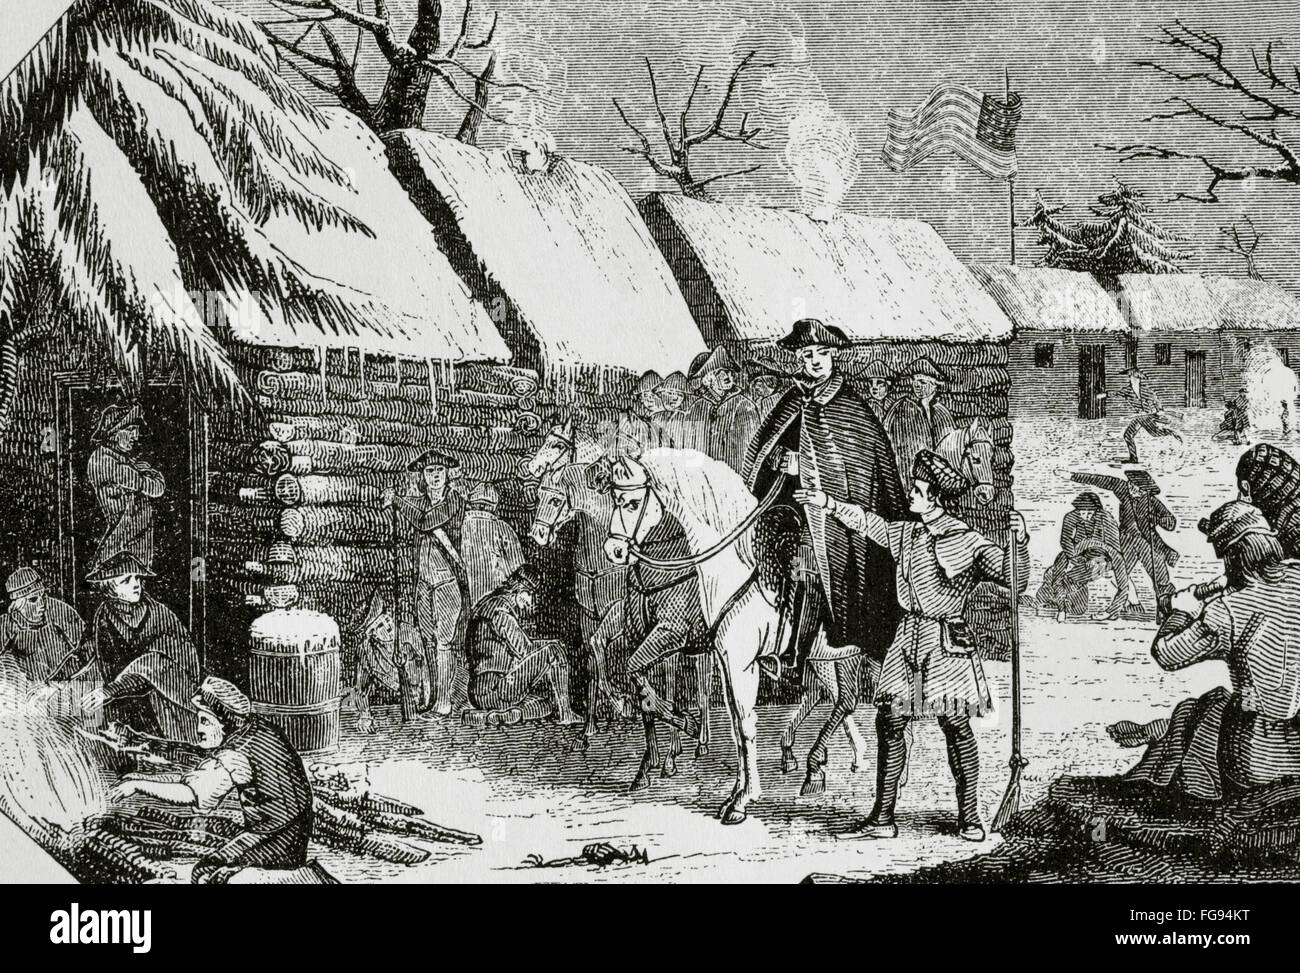 George Washington (1732-1799) visits Valley Forge (Pennsylvania), the  Continental Army's camp in winter, 1777-1778. Engraving. 19th century.